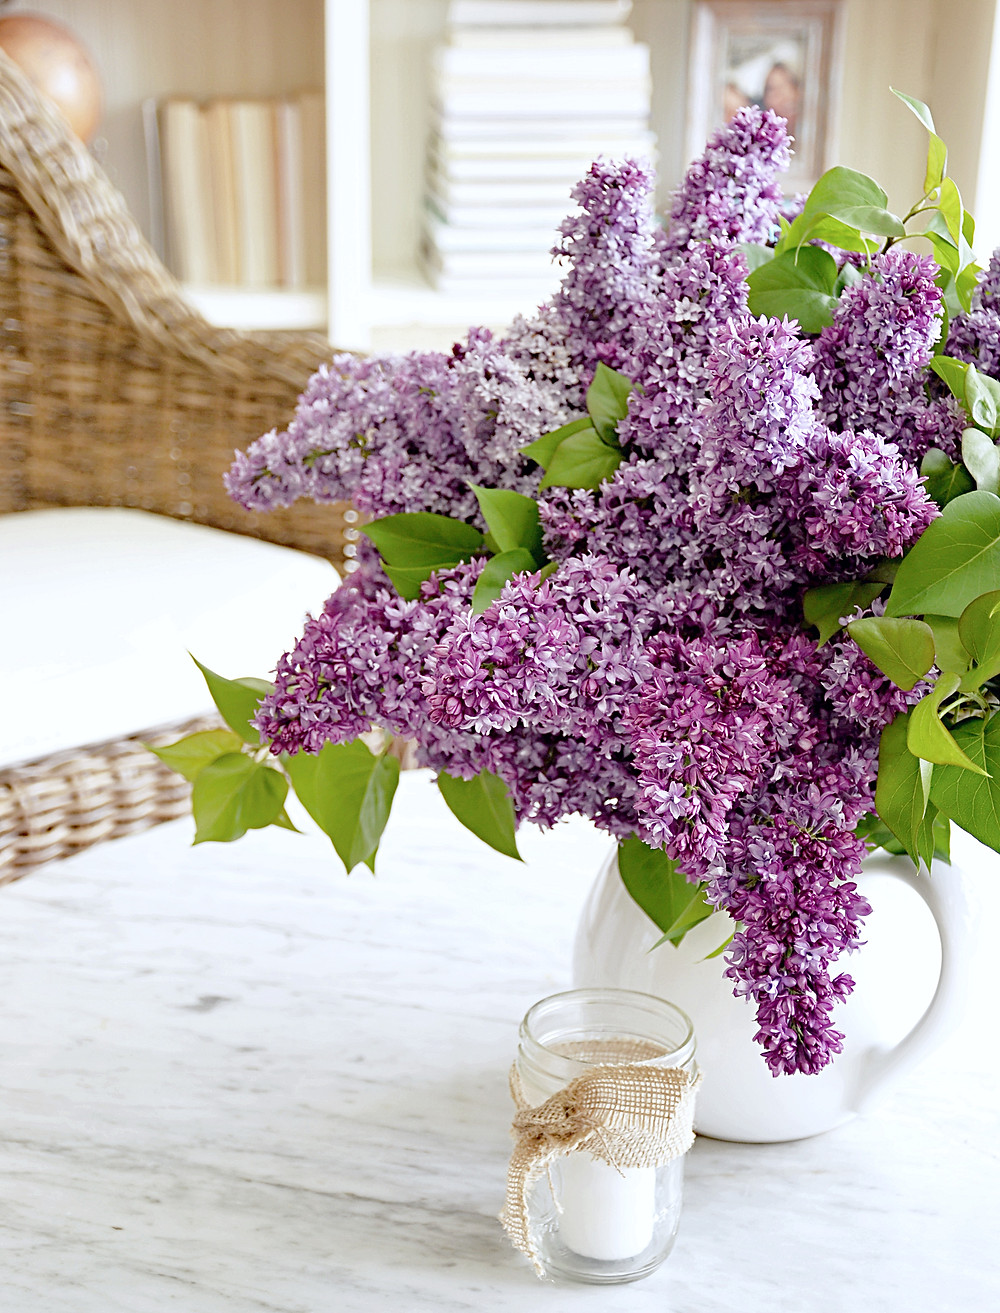 Lilacs and shelfie.